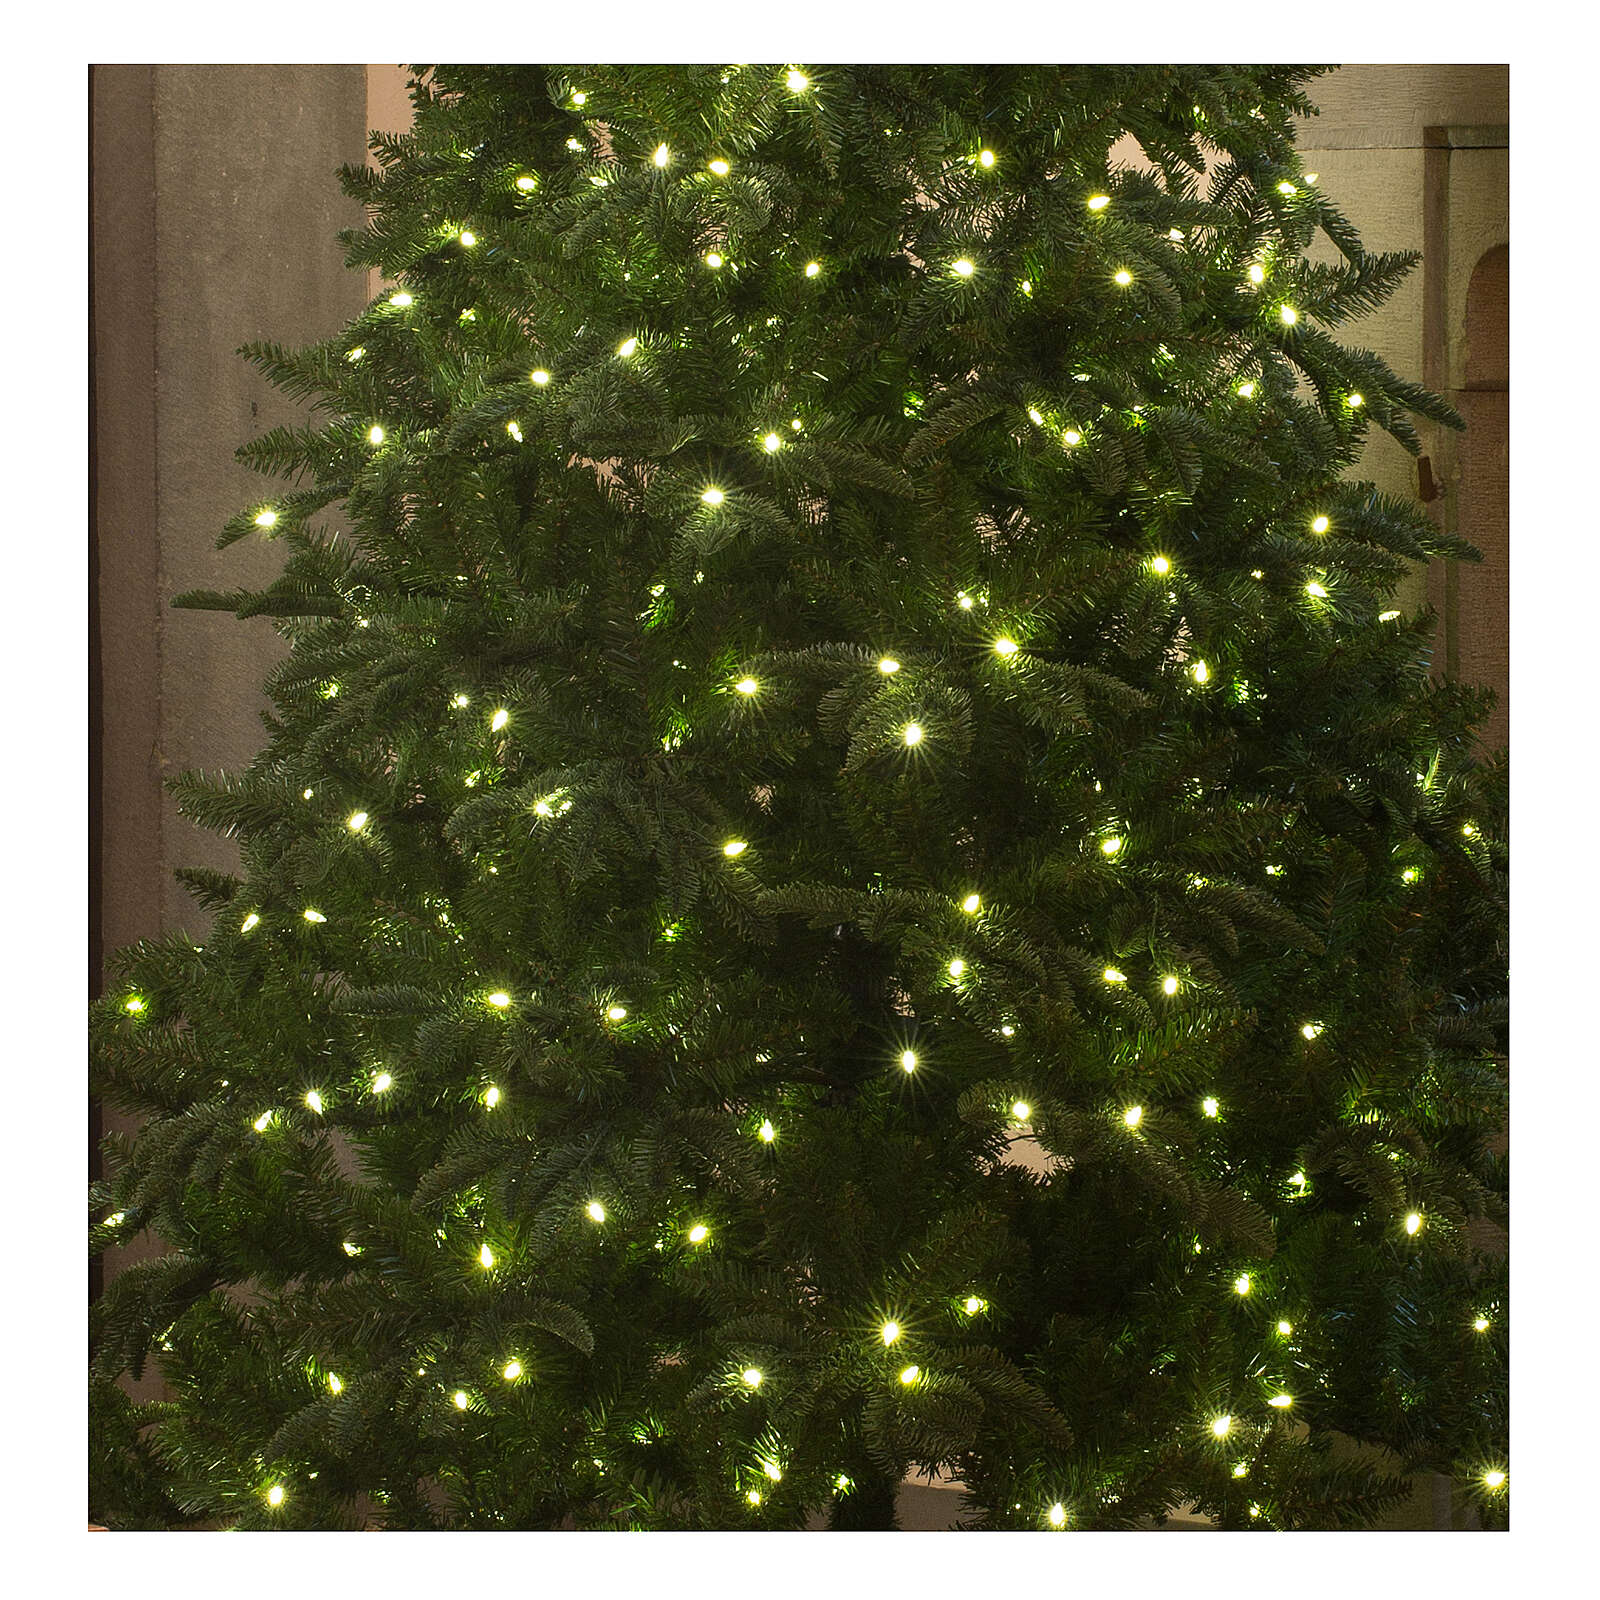 STOCK Hunter Green Christmas tree 340 cm with 1700 warm white LEDs 3